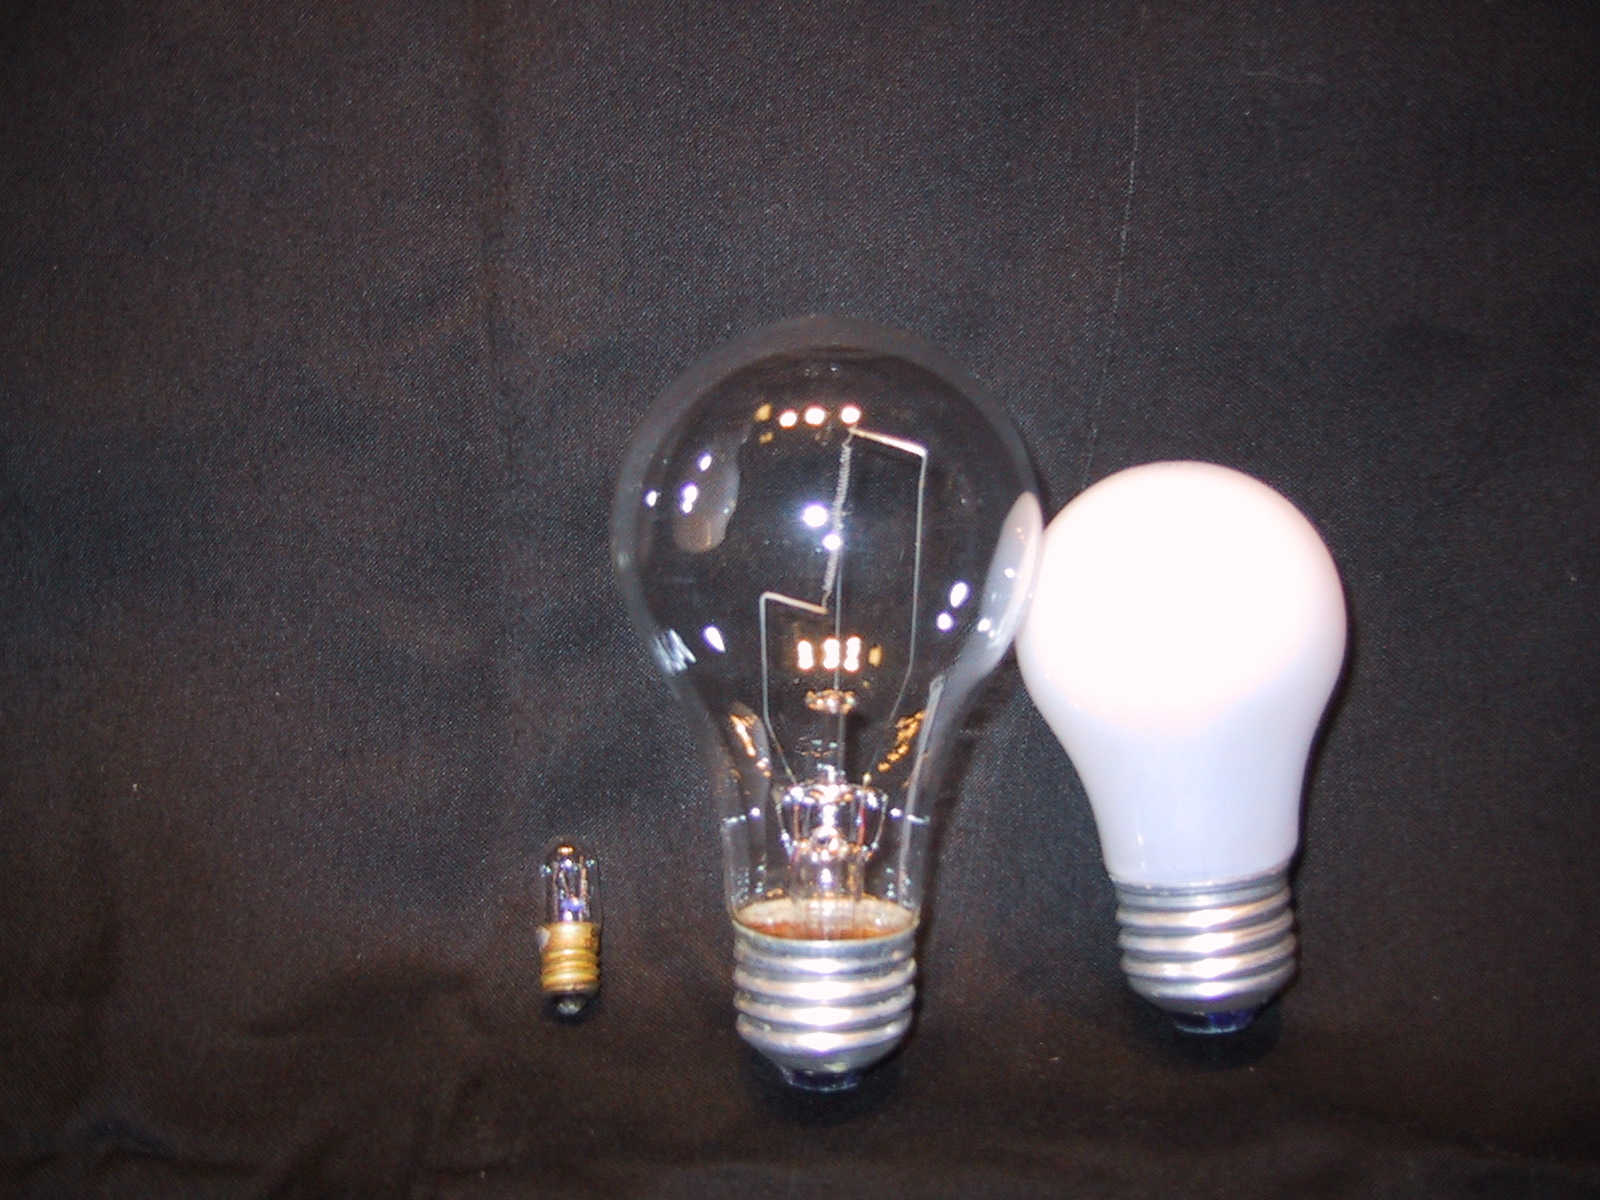 Producing Light Explains The Two Most Common Methods For Wiring A Basic Switch Left Variety Of Bulbs With Filament Visible In Clear One Right Bulb Being Emitted From Hot